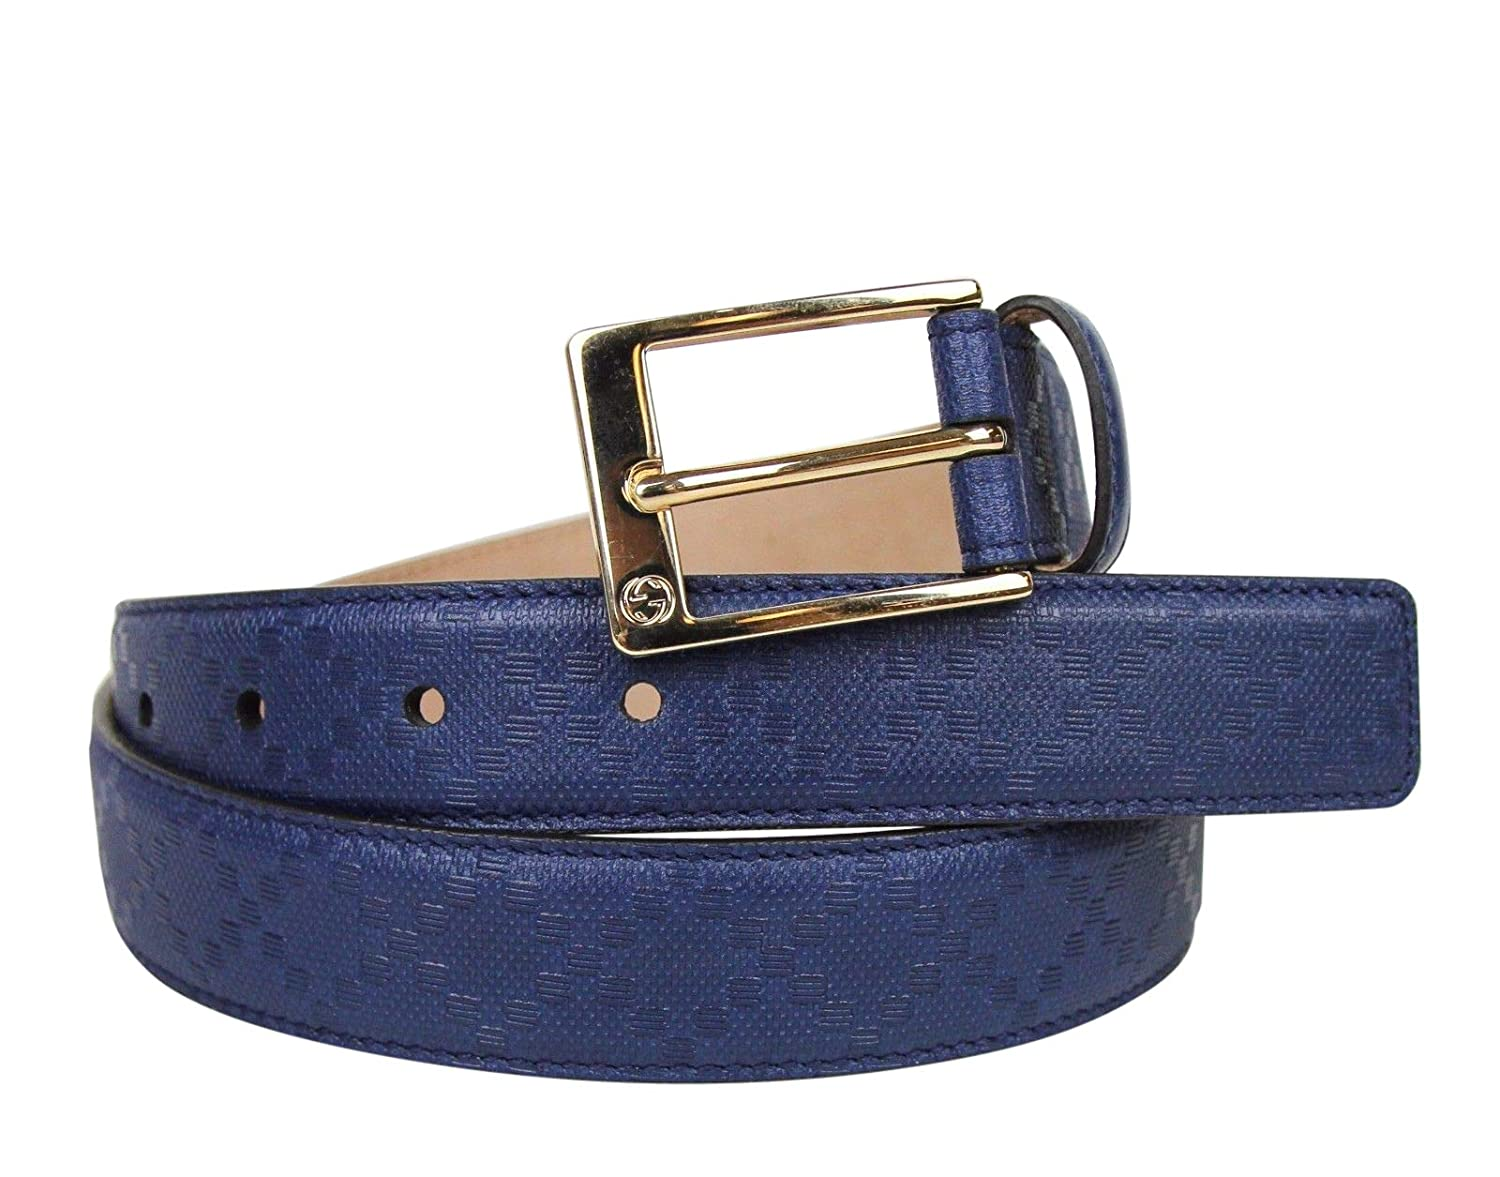 cfb6b8346 Amazon.com: Gucci Men's Square Navy Blue Leather Belt with Buckle 345658  4232 (105/42): Clothing